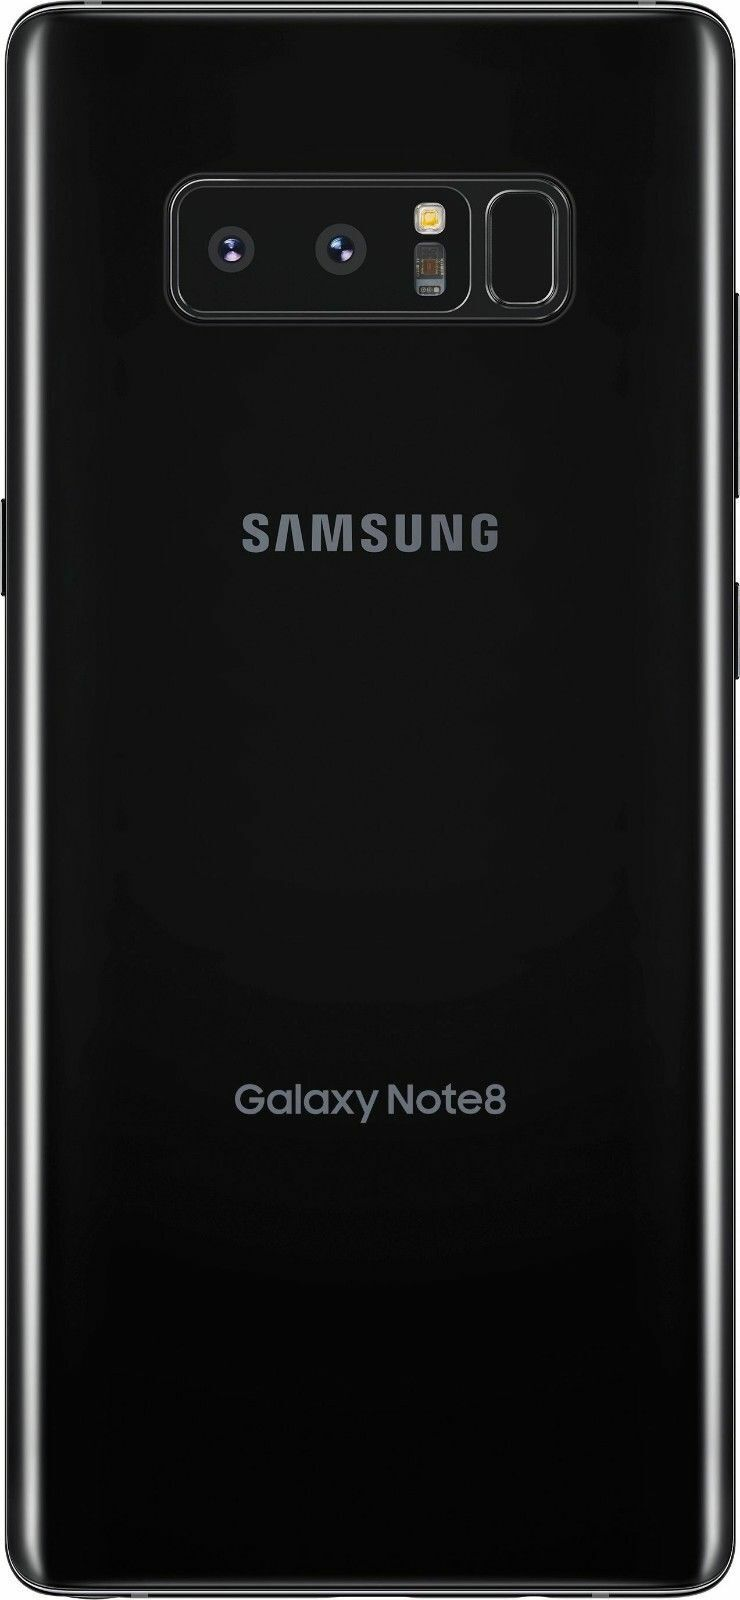 Android Phone - Samsung Galaxy Note 8 N950U T-Mobile Sprint AT&T Verizon Carrier Unlocked